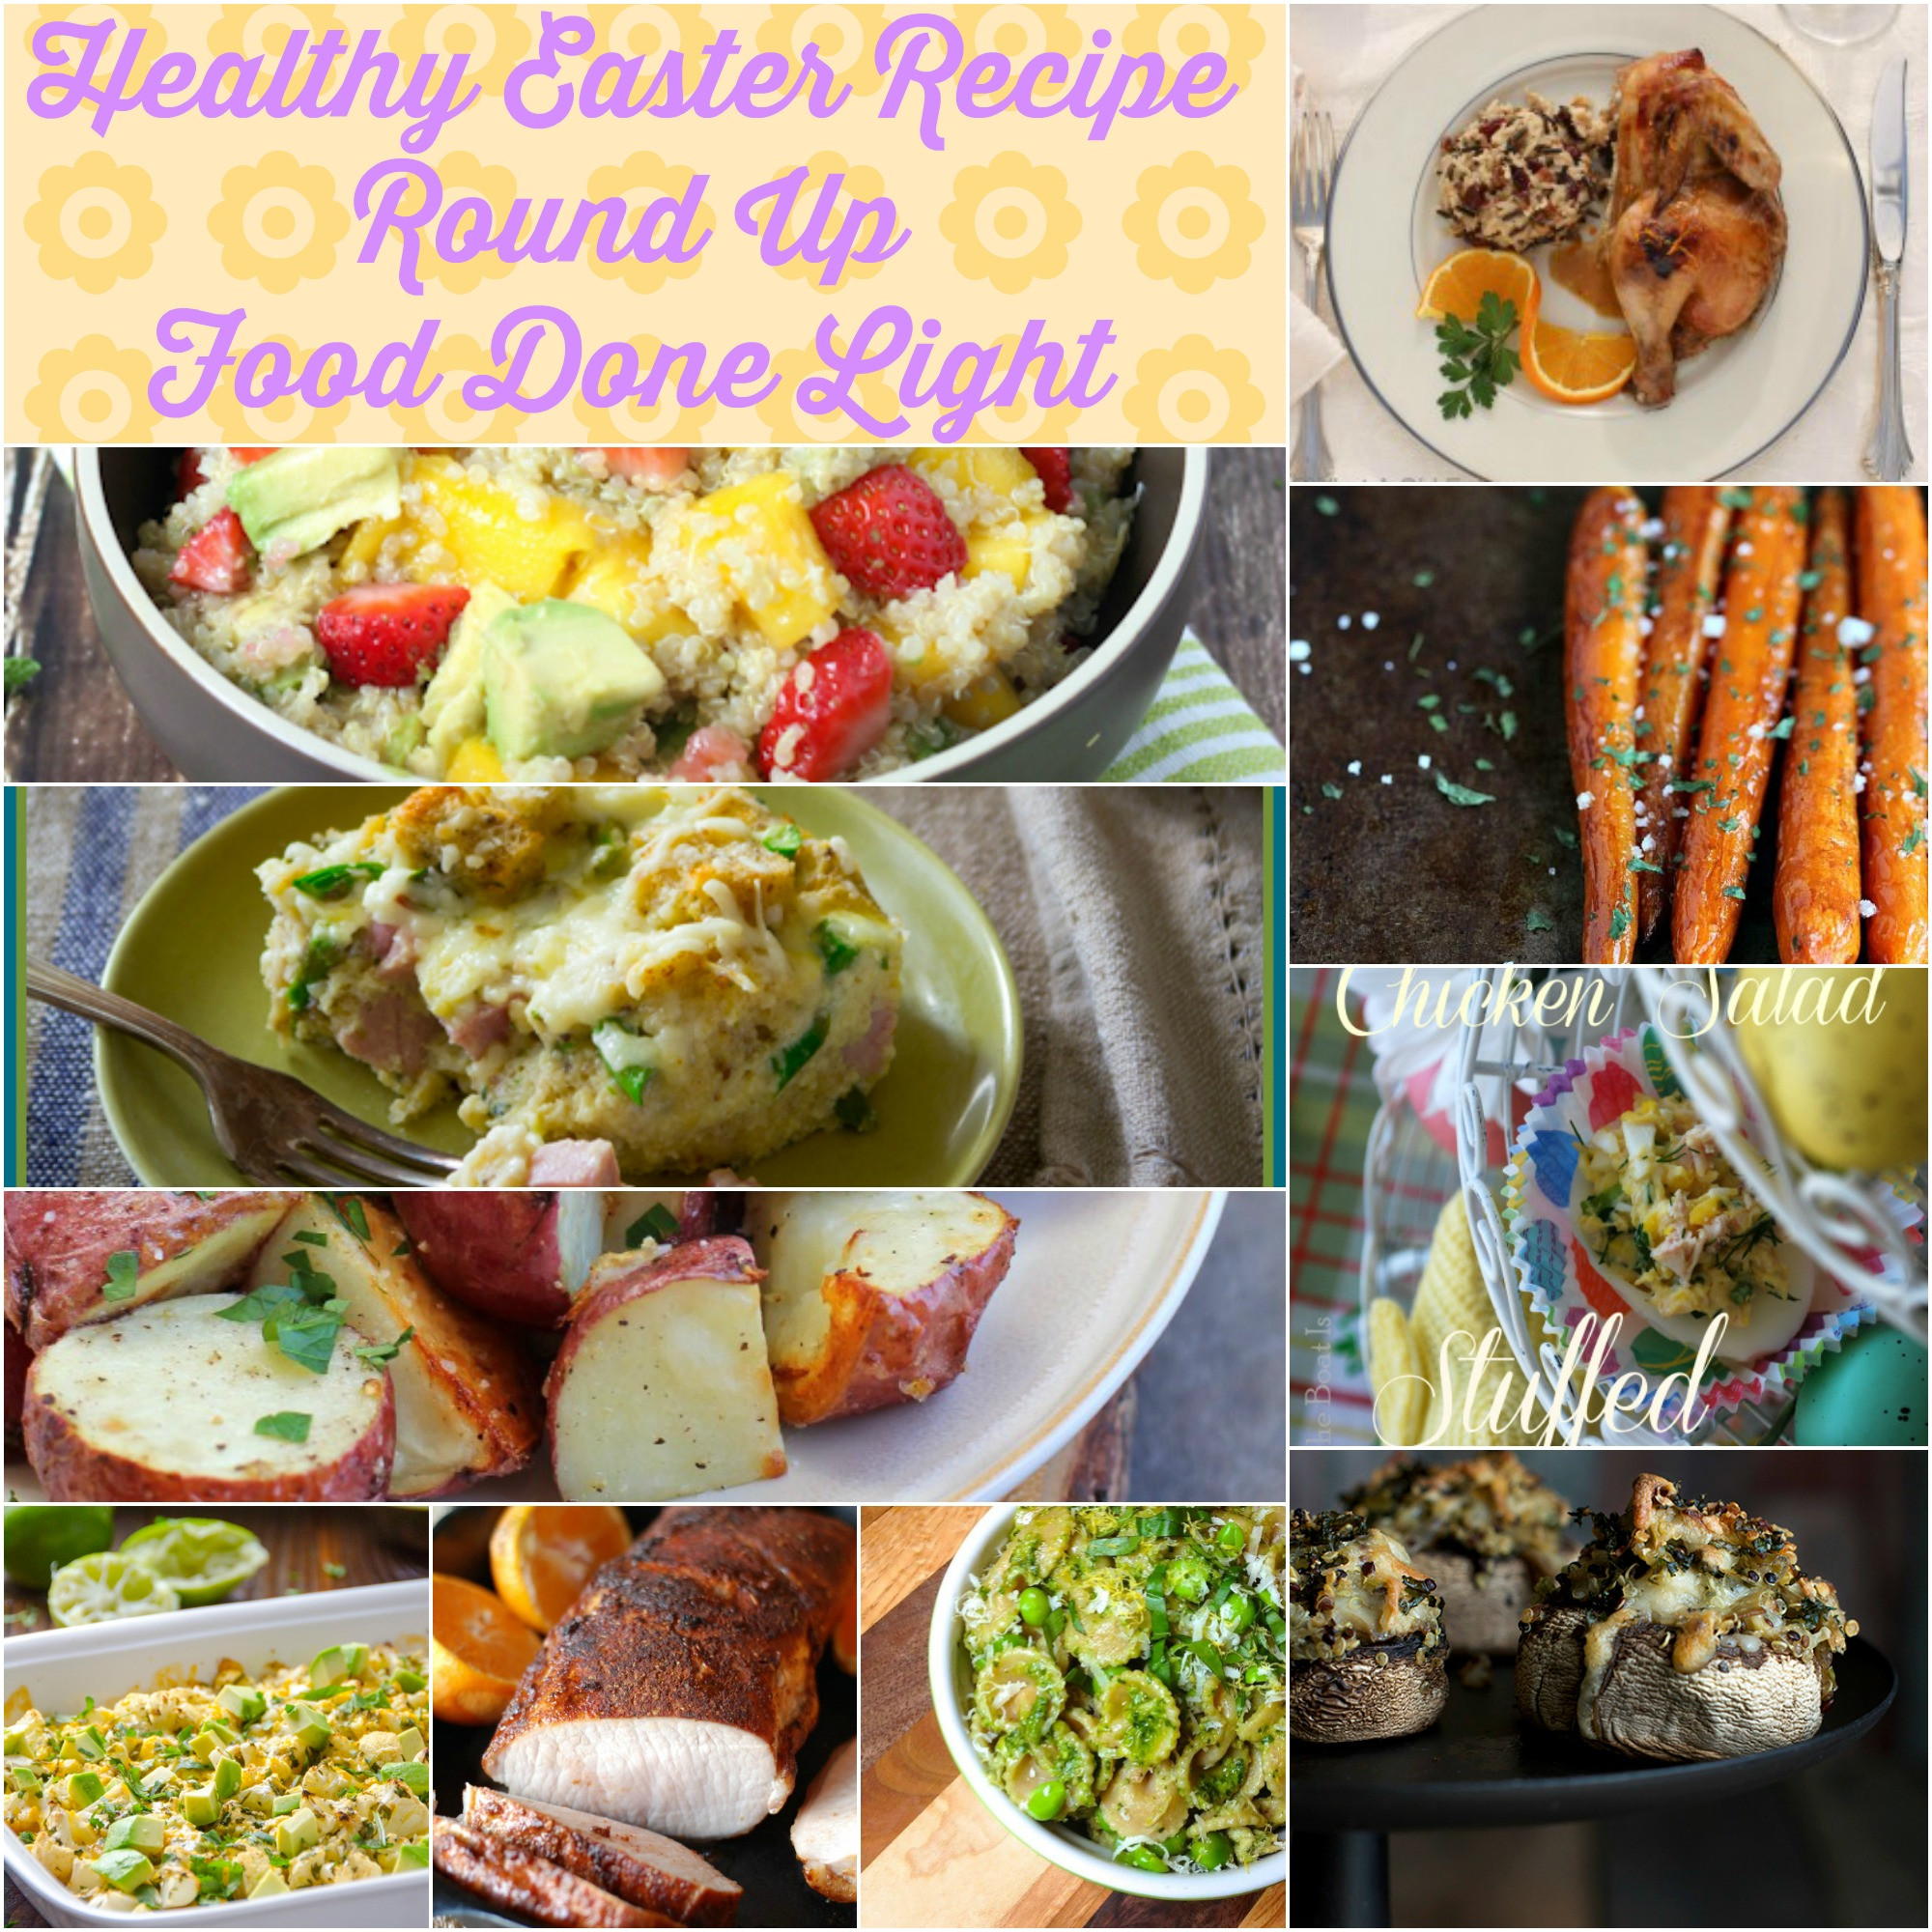 Receipes For Easter Dinner  Healthy Easter Brunch Recipe Round Up Food Done Light